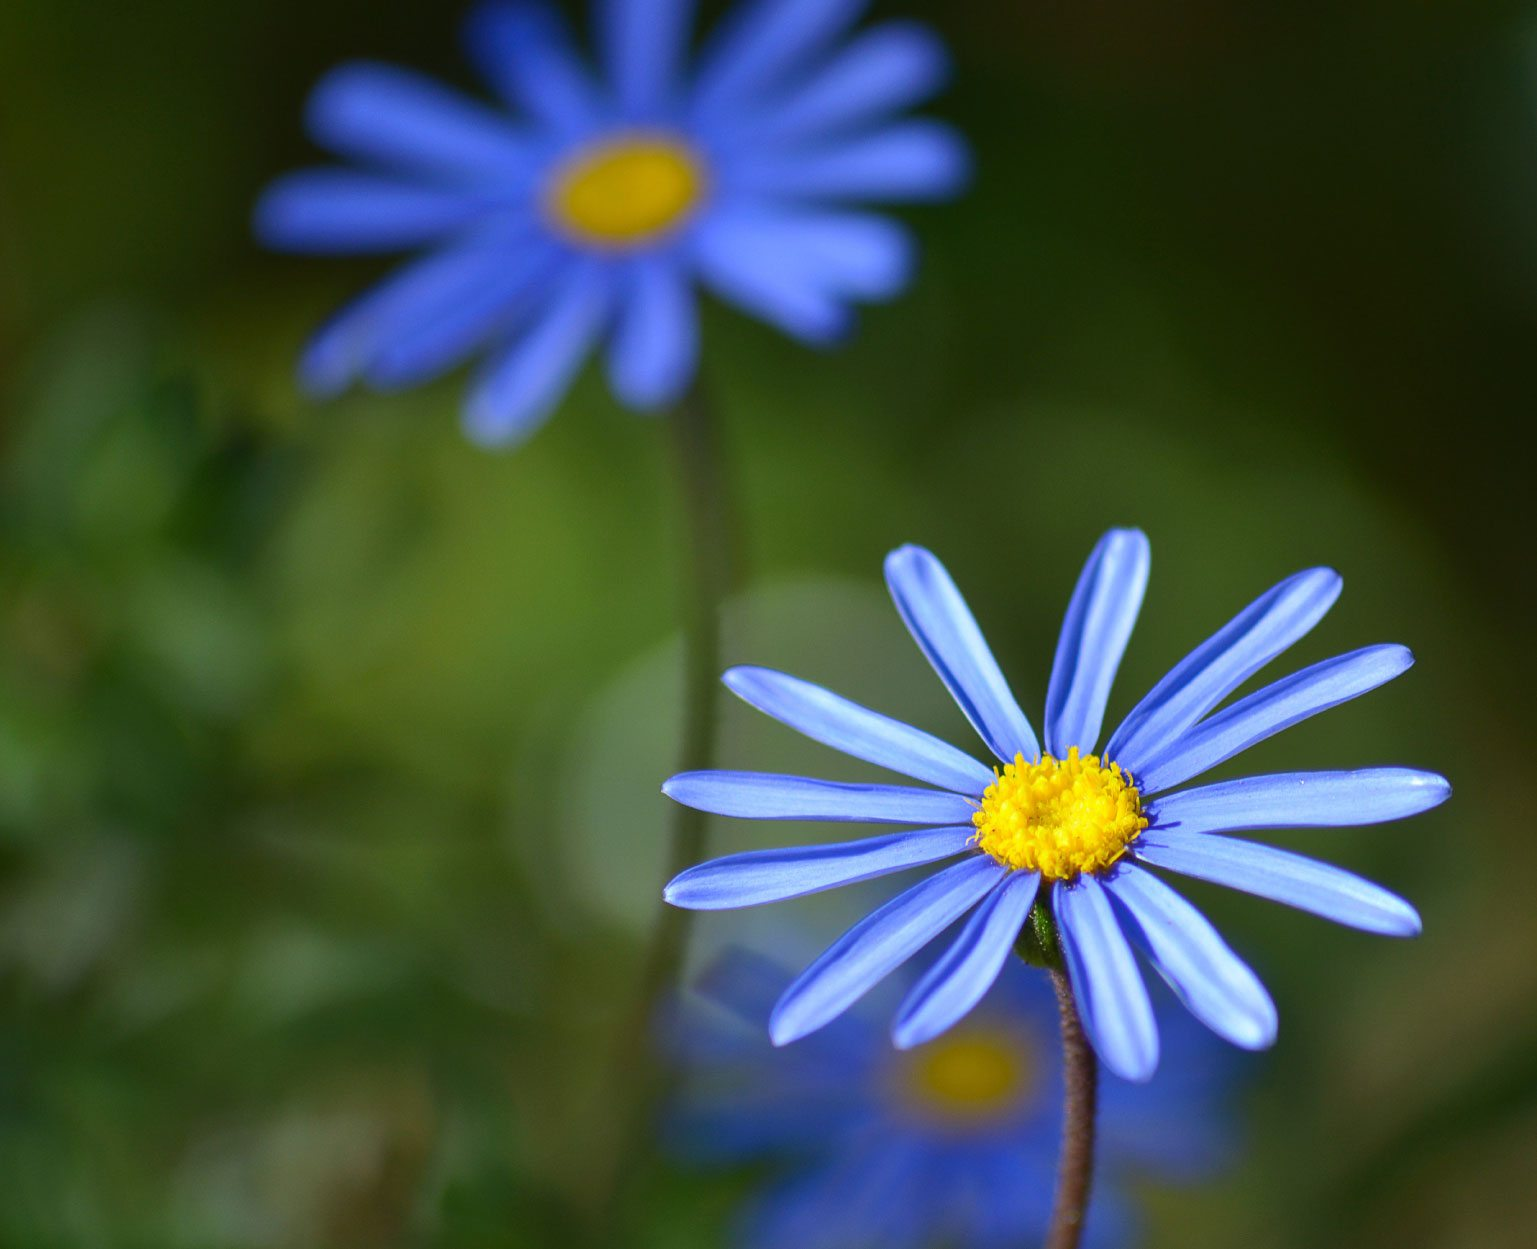 Felicia blue daisy information how to grow a blue kingfisher daisy felicia blue daisy information how to grow a blue kingfisher daisy plant izmirmasajfo